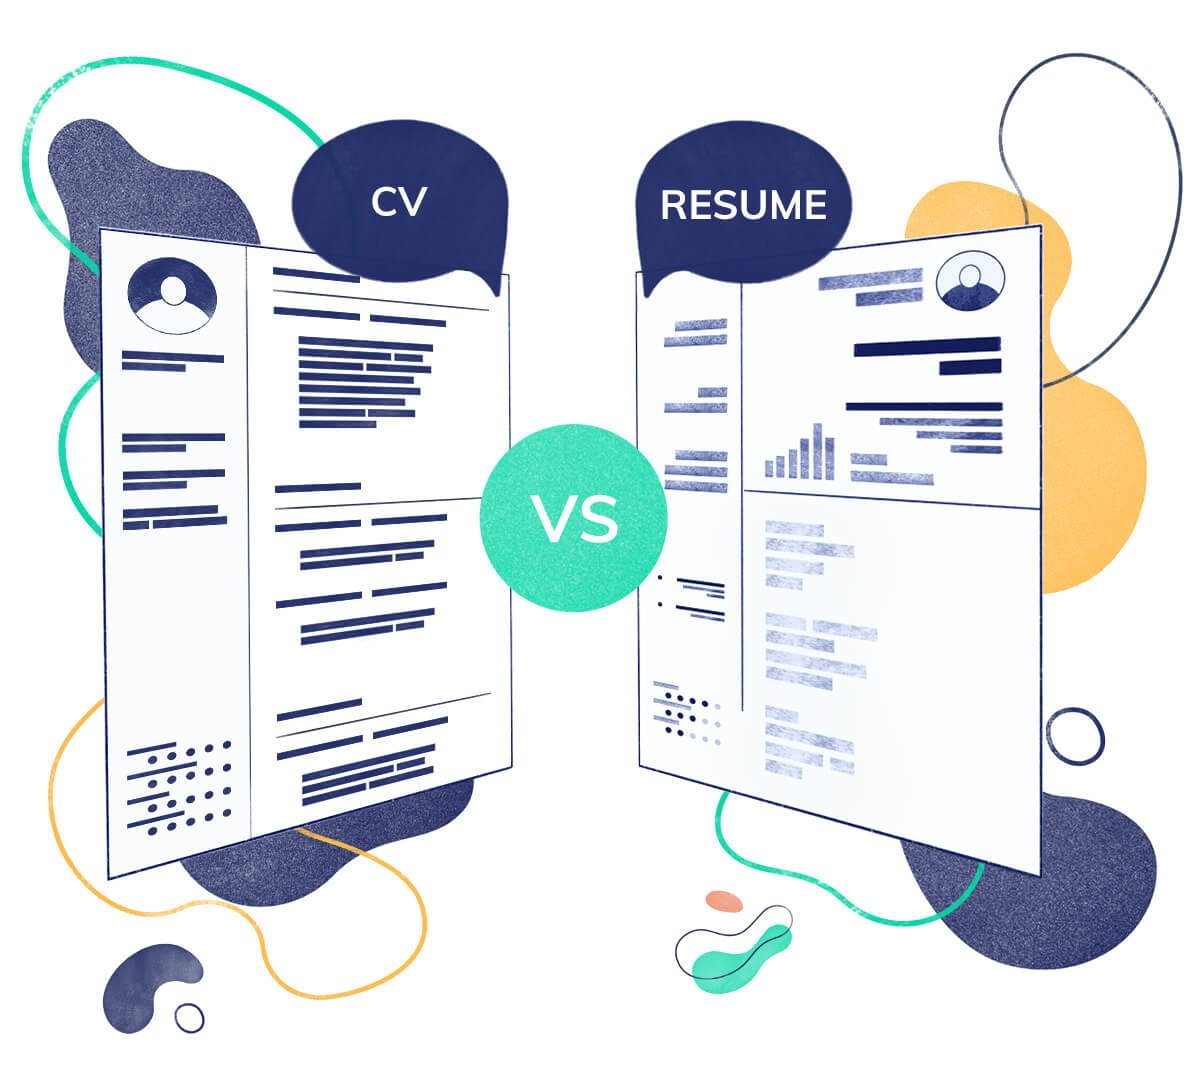 Curriculum Vitae (CV) vs Resume: What is the Difference?